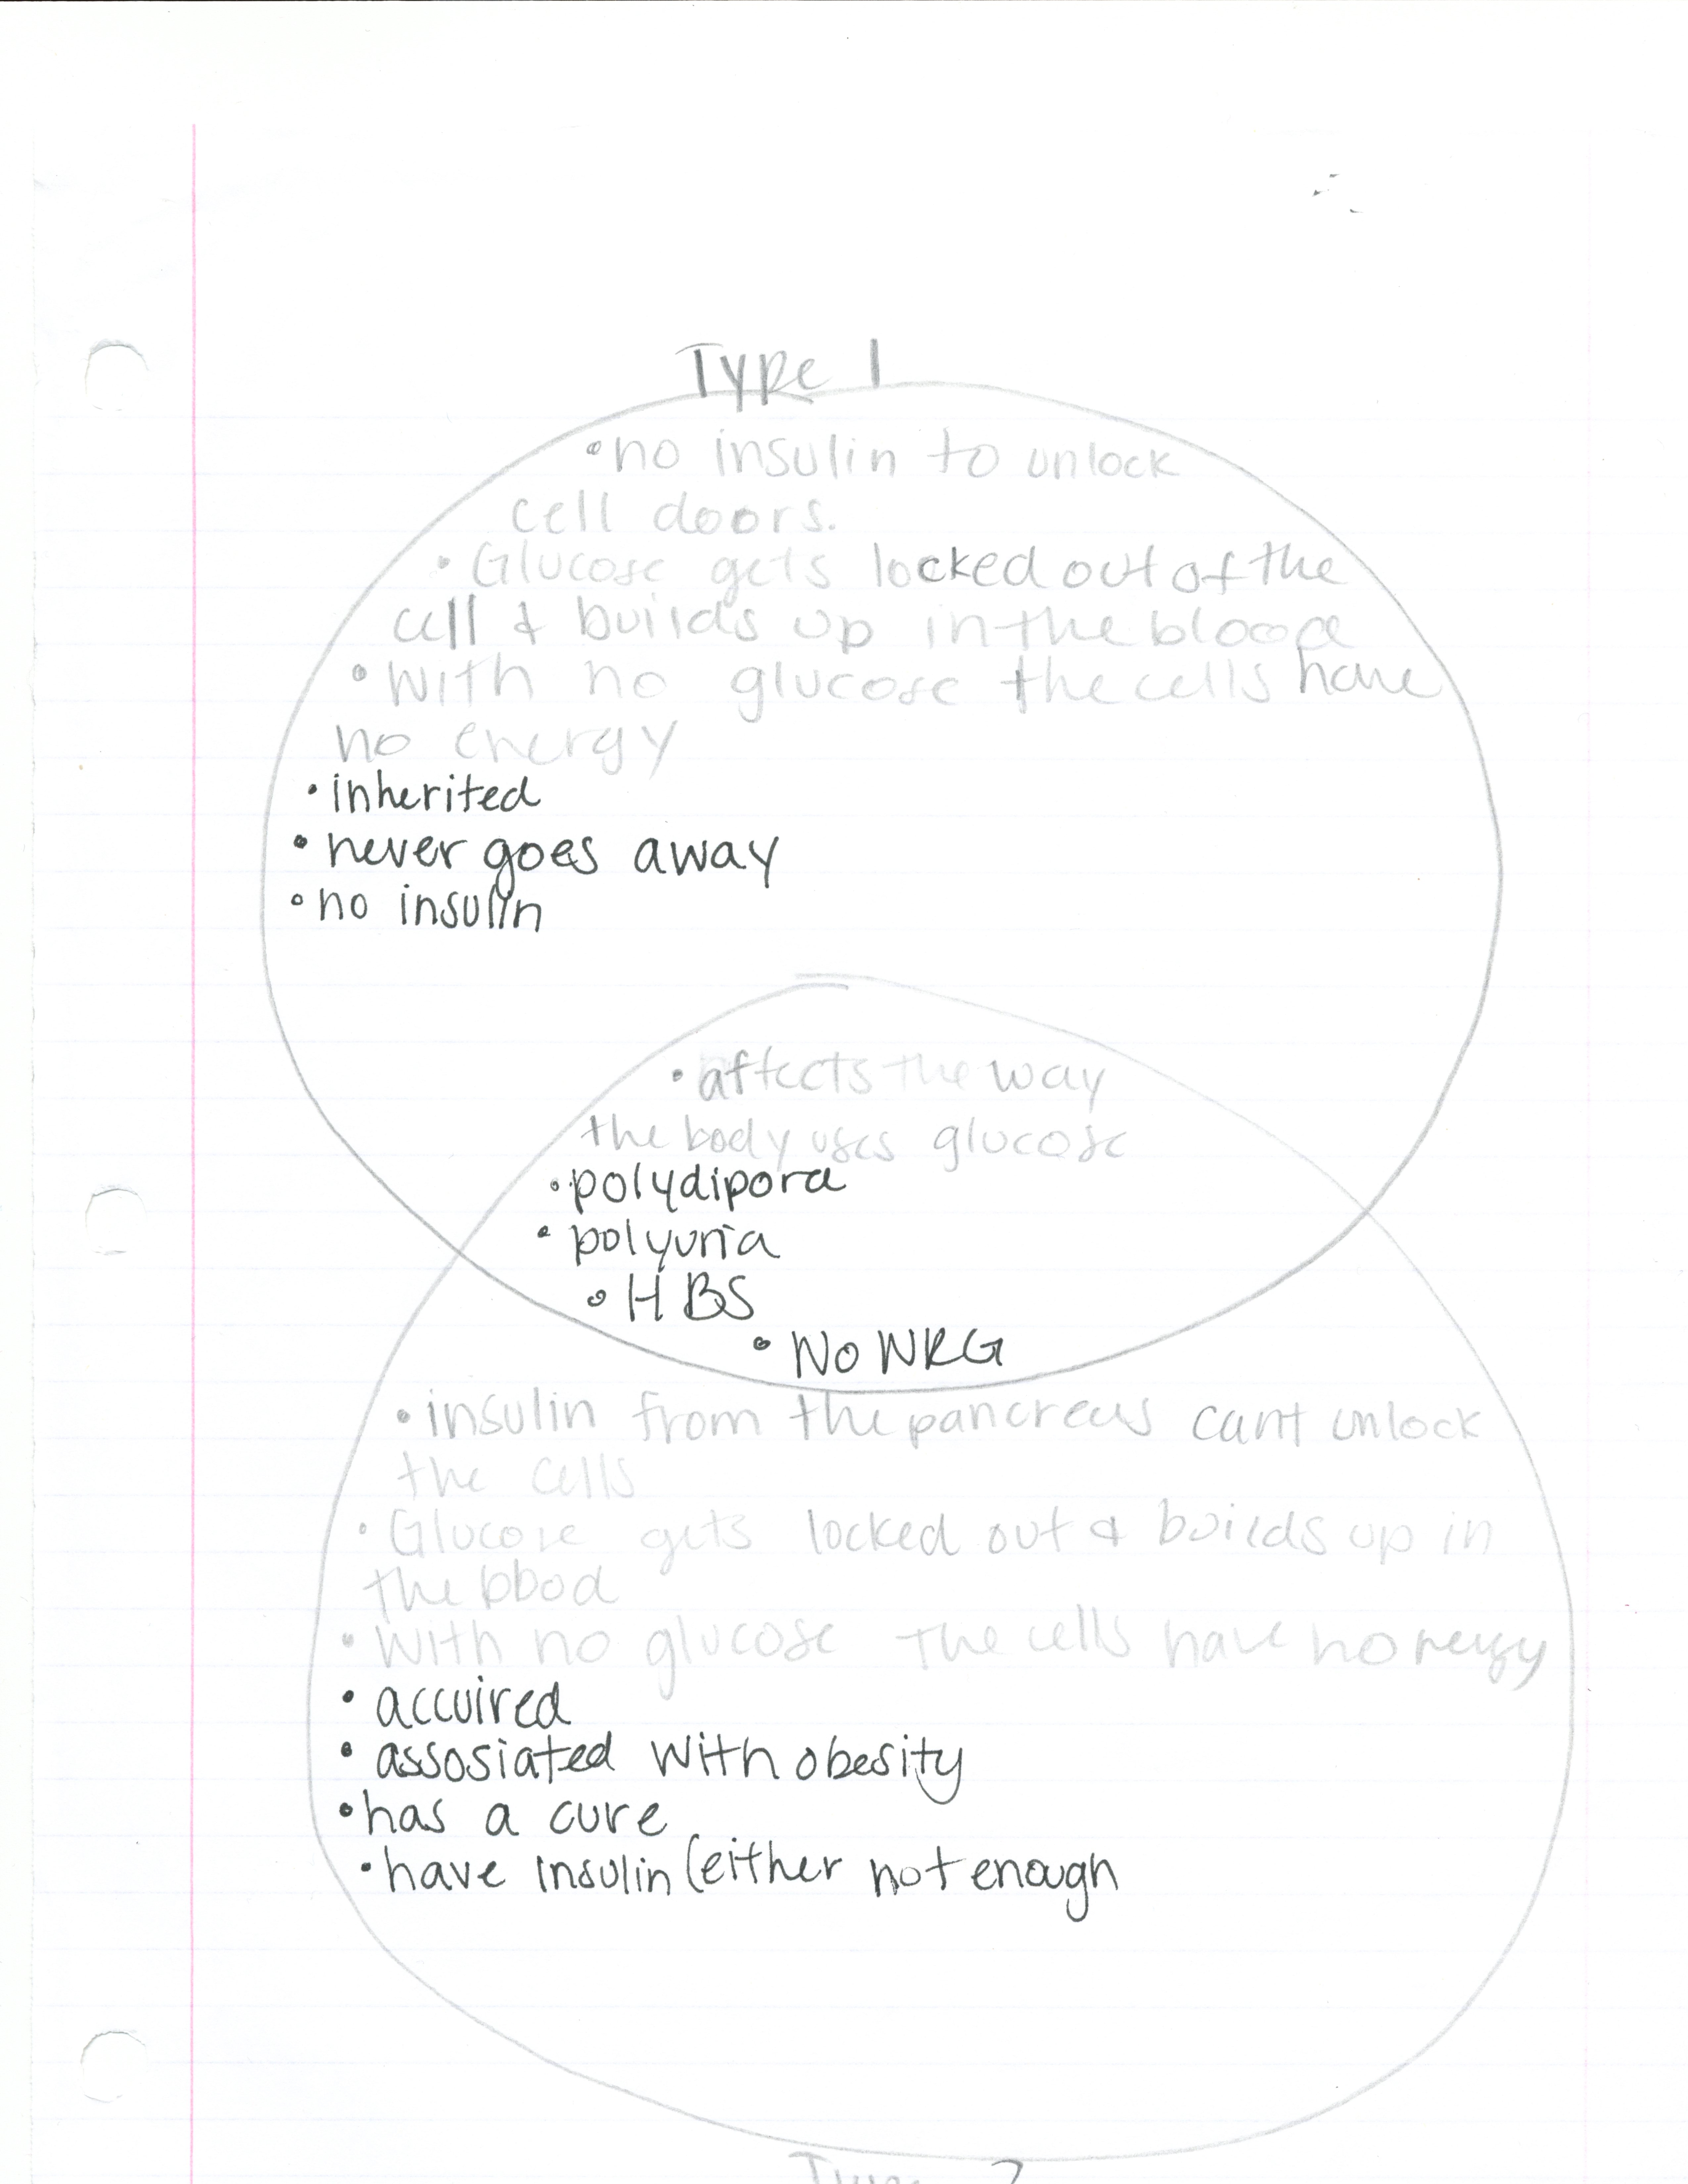 venn diagram type 1 and 2 diabetes labeled of heart on base pbs classroom activities sarah wilson project lead the